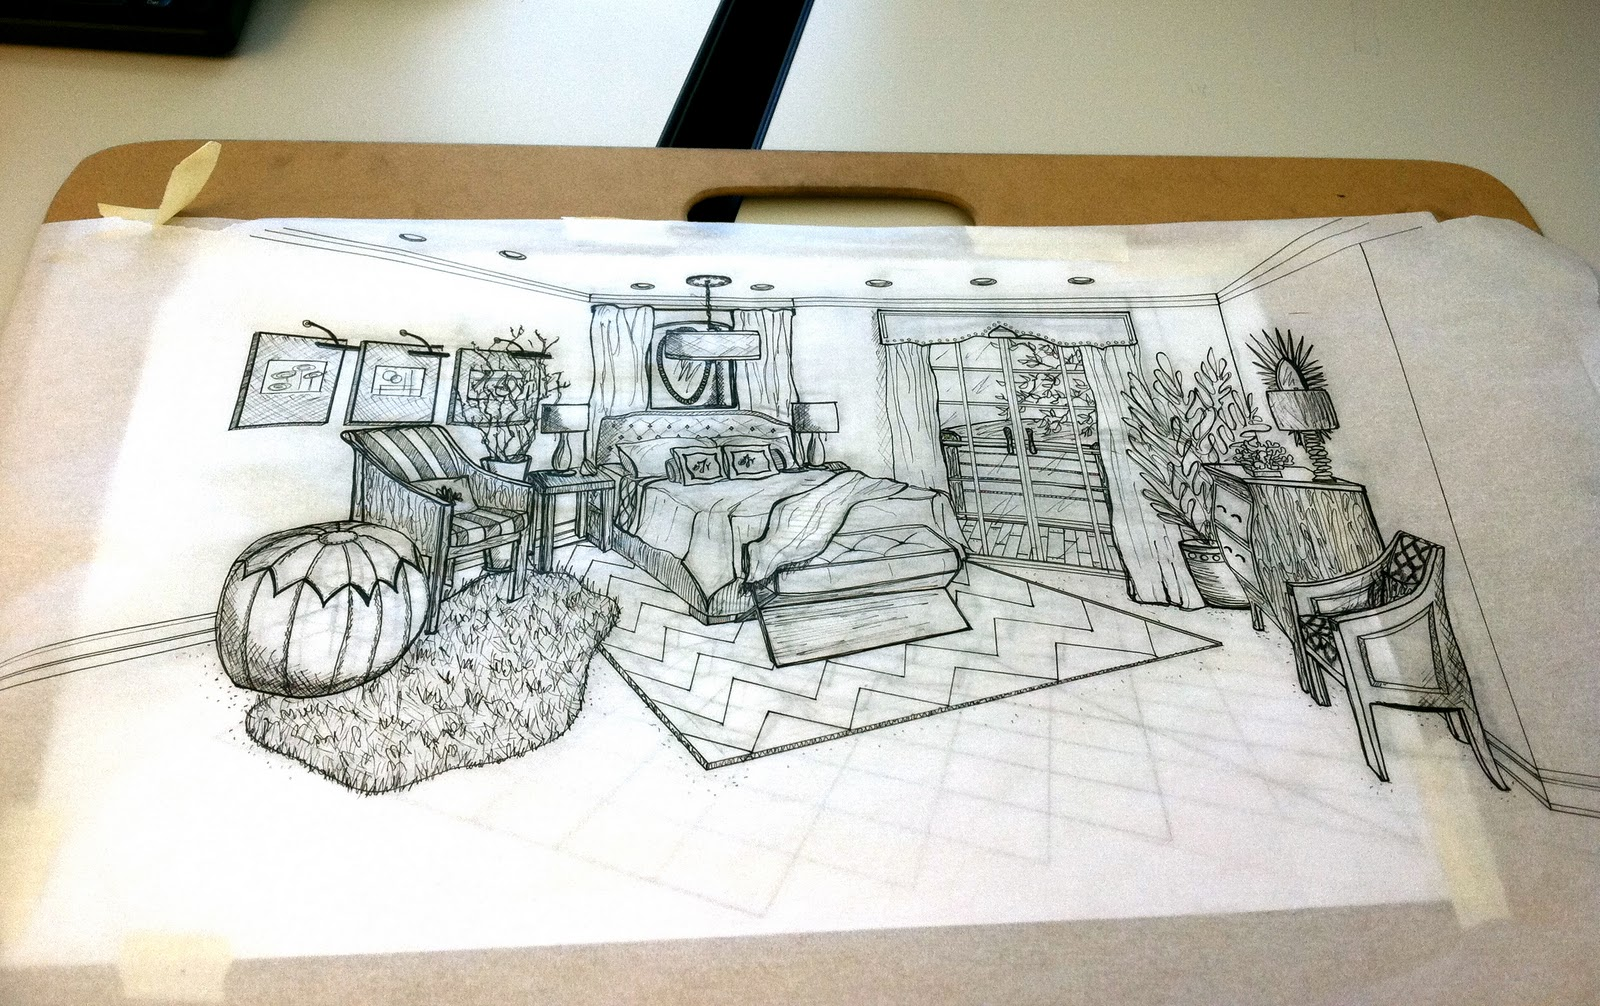 Bedroom drawing perspective - 2nd Attempt At A Perspective Drawing This Time We Had The Chance To Pull In Our Own Creativity To The Space And Work With A Wall On The Diagonal